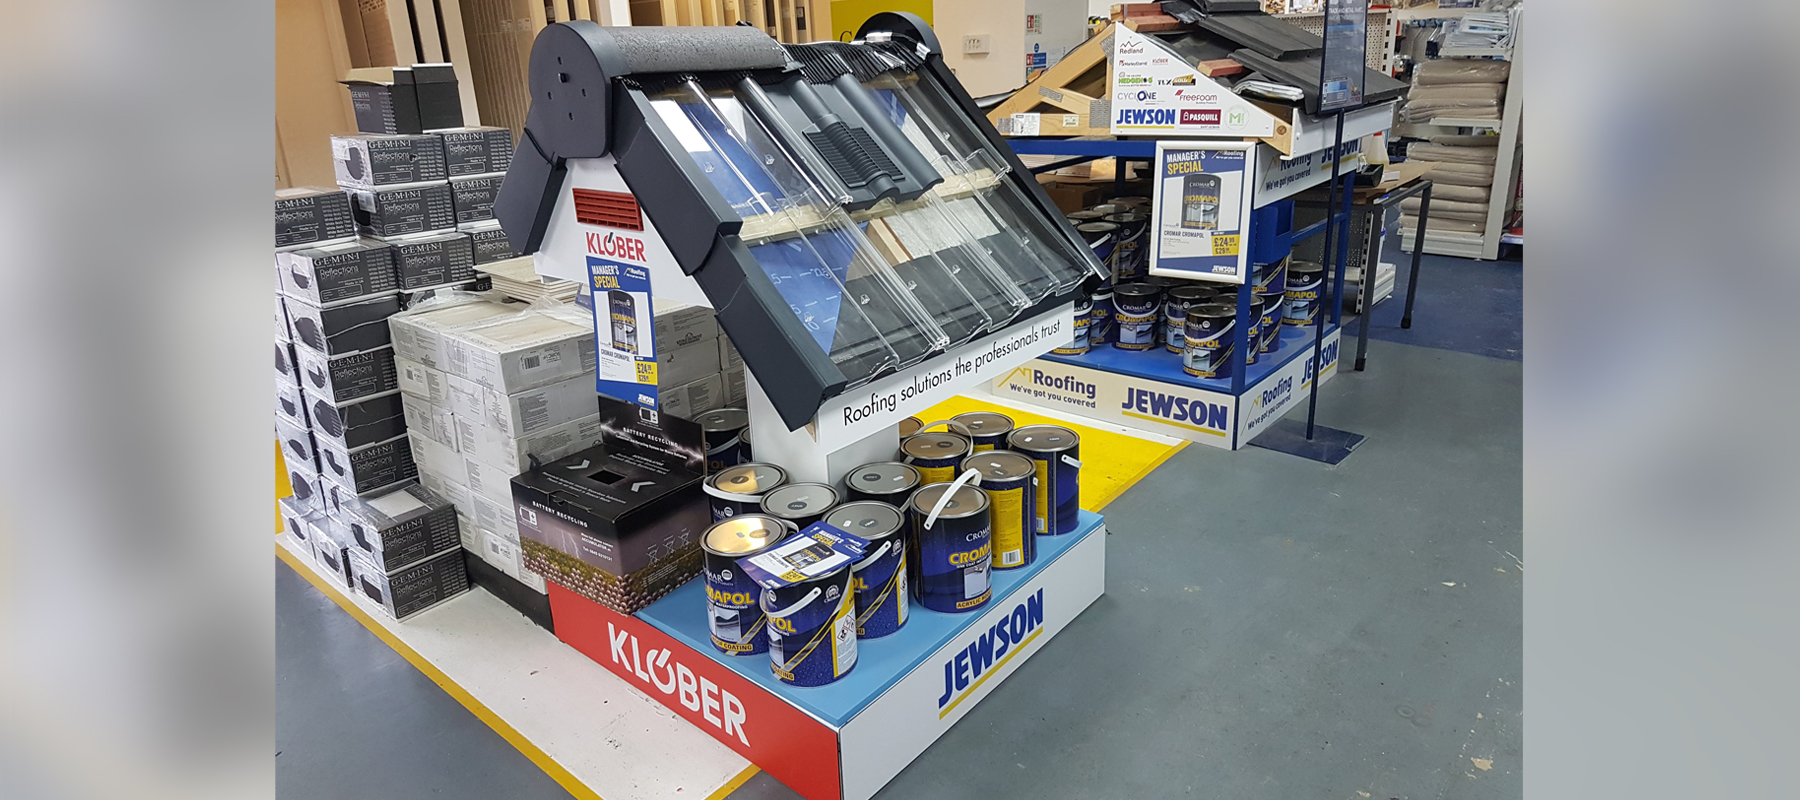 Klober and Jewson Display